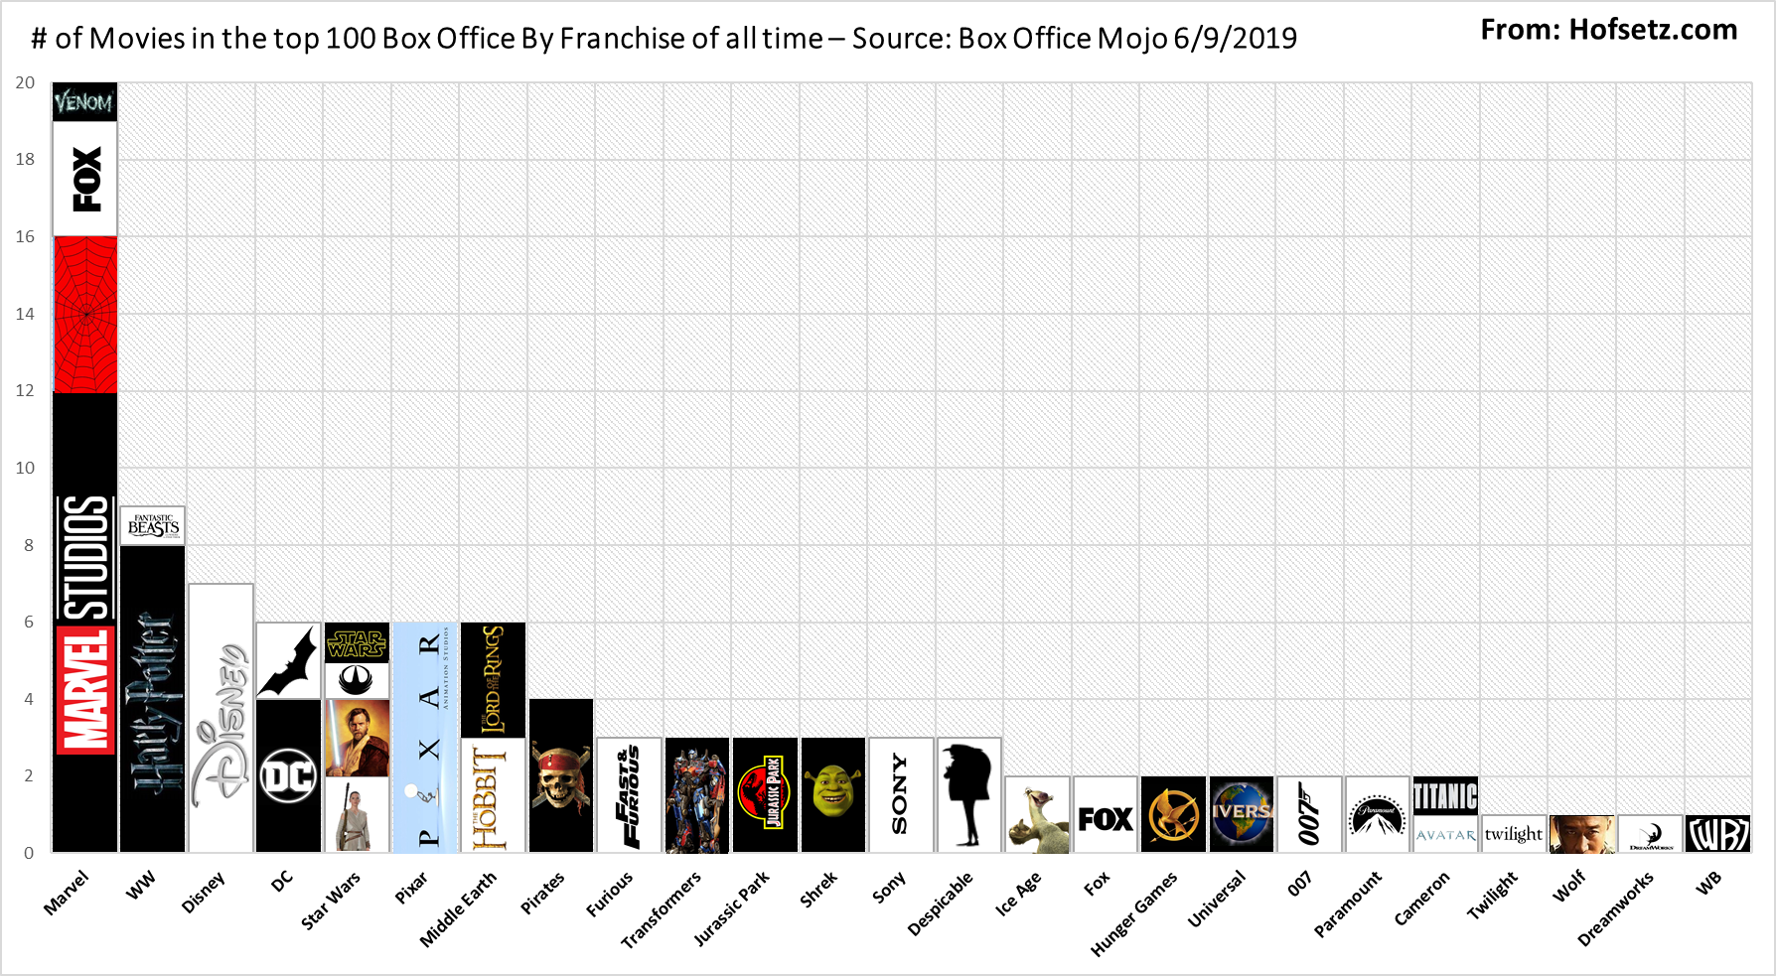 2019 Analysis of the all-time top 100 movies by franchise